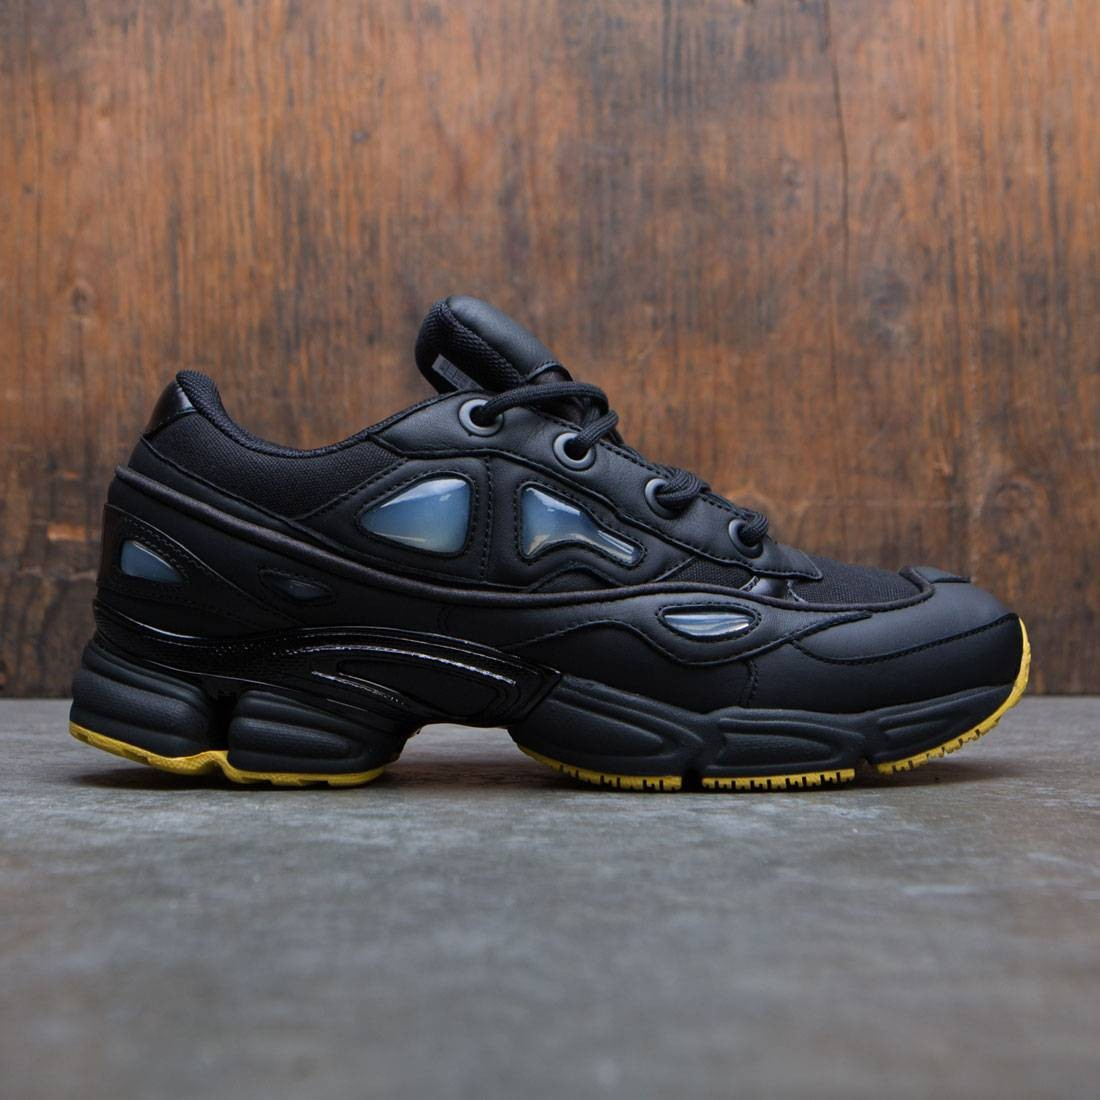 Adidas x Raf Simons Men Ozweego III (black / core black / corn yellow)